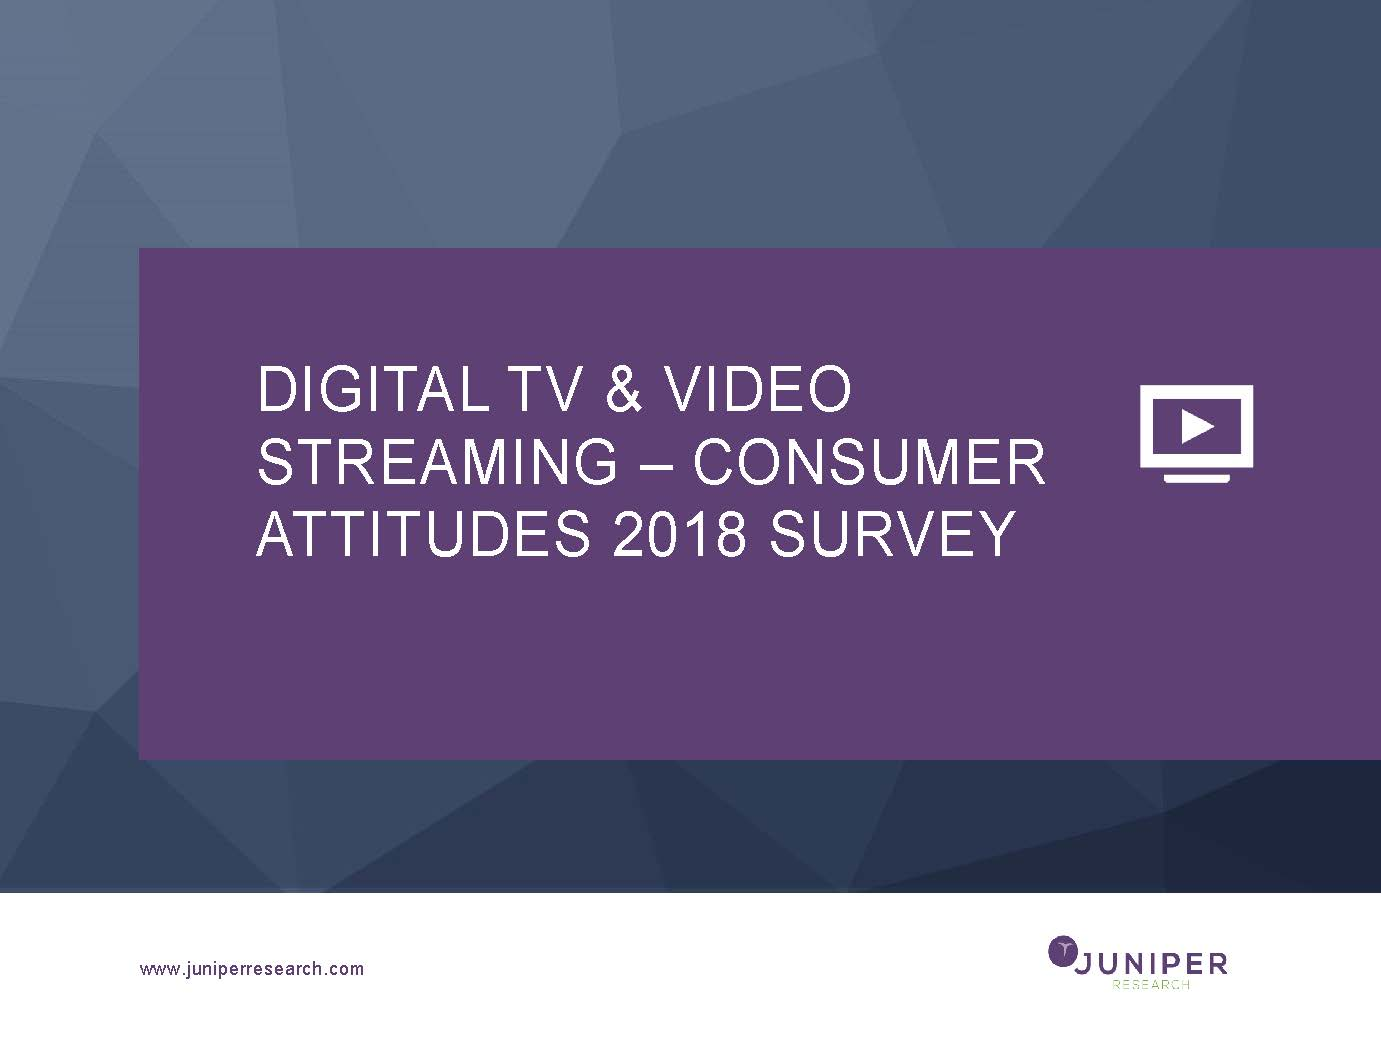 Digital TV & Video Streaming Survey